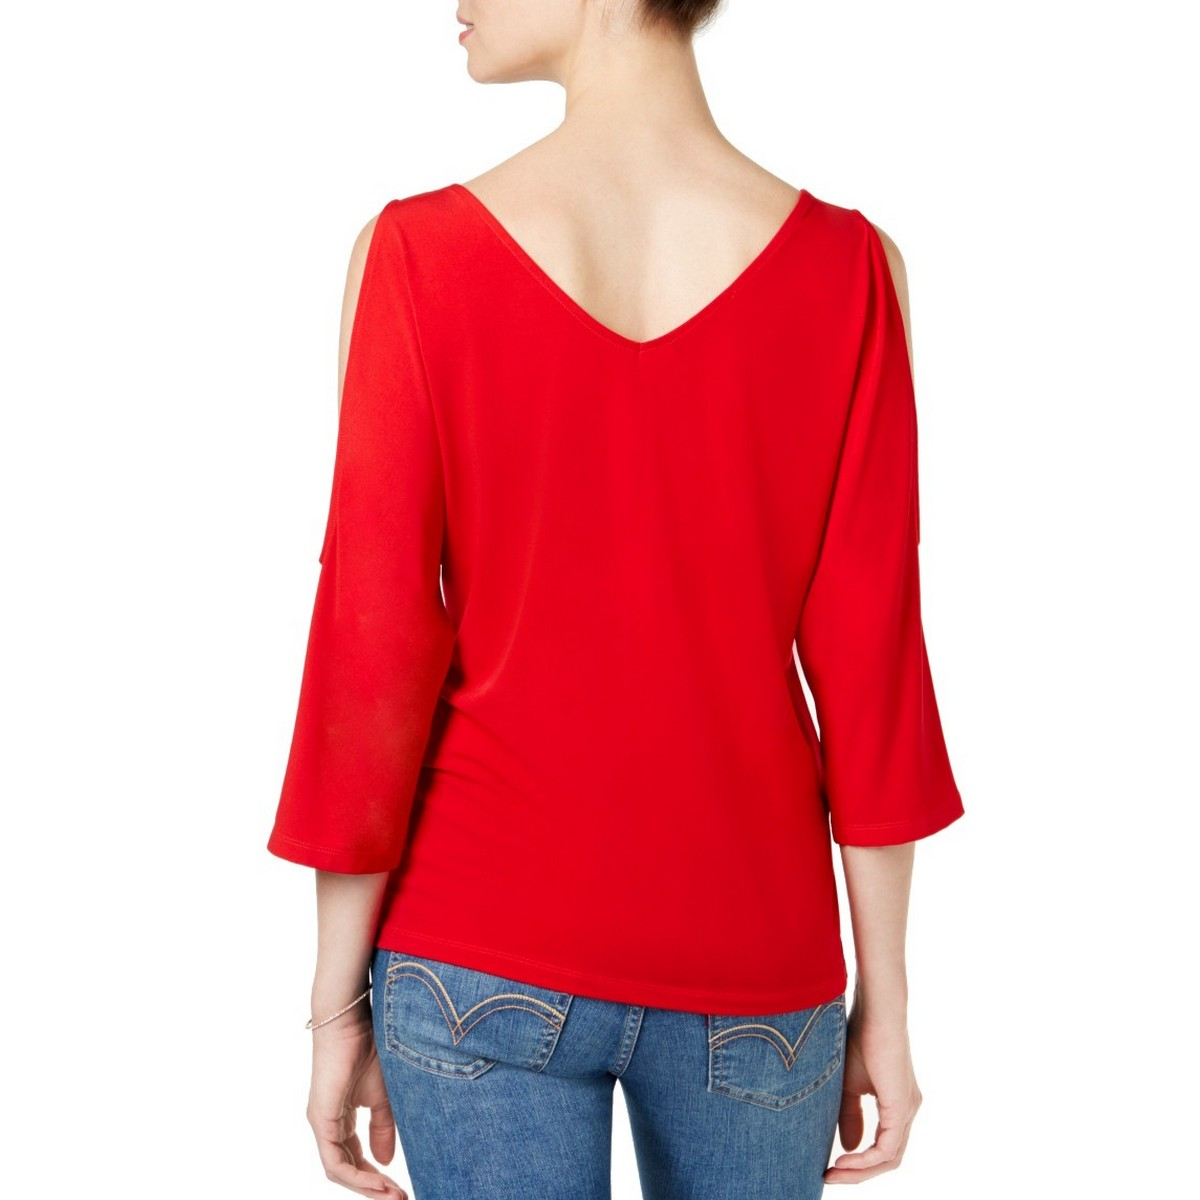 INC-NEW-Women-039-s-Studded-Cold-shoulder-3-4-Sleeve-Blouse-Shirt-Top-TEDO thumbnail 3